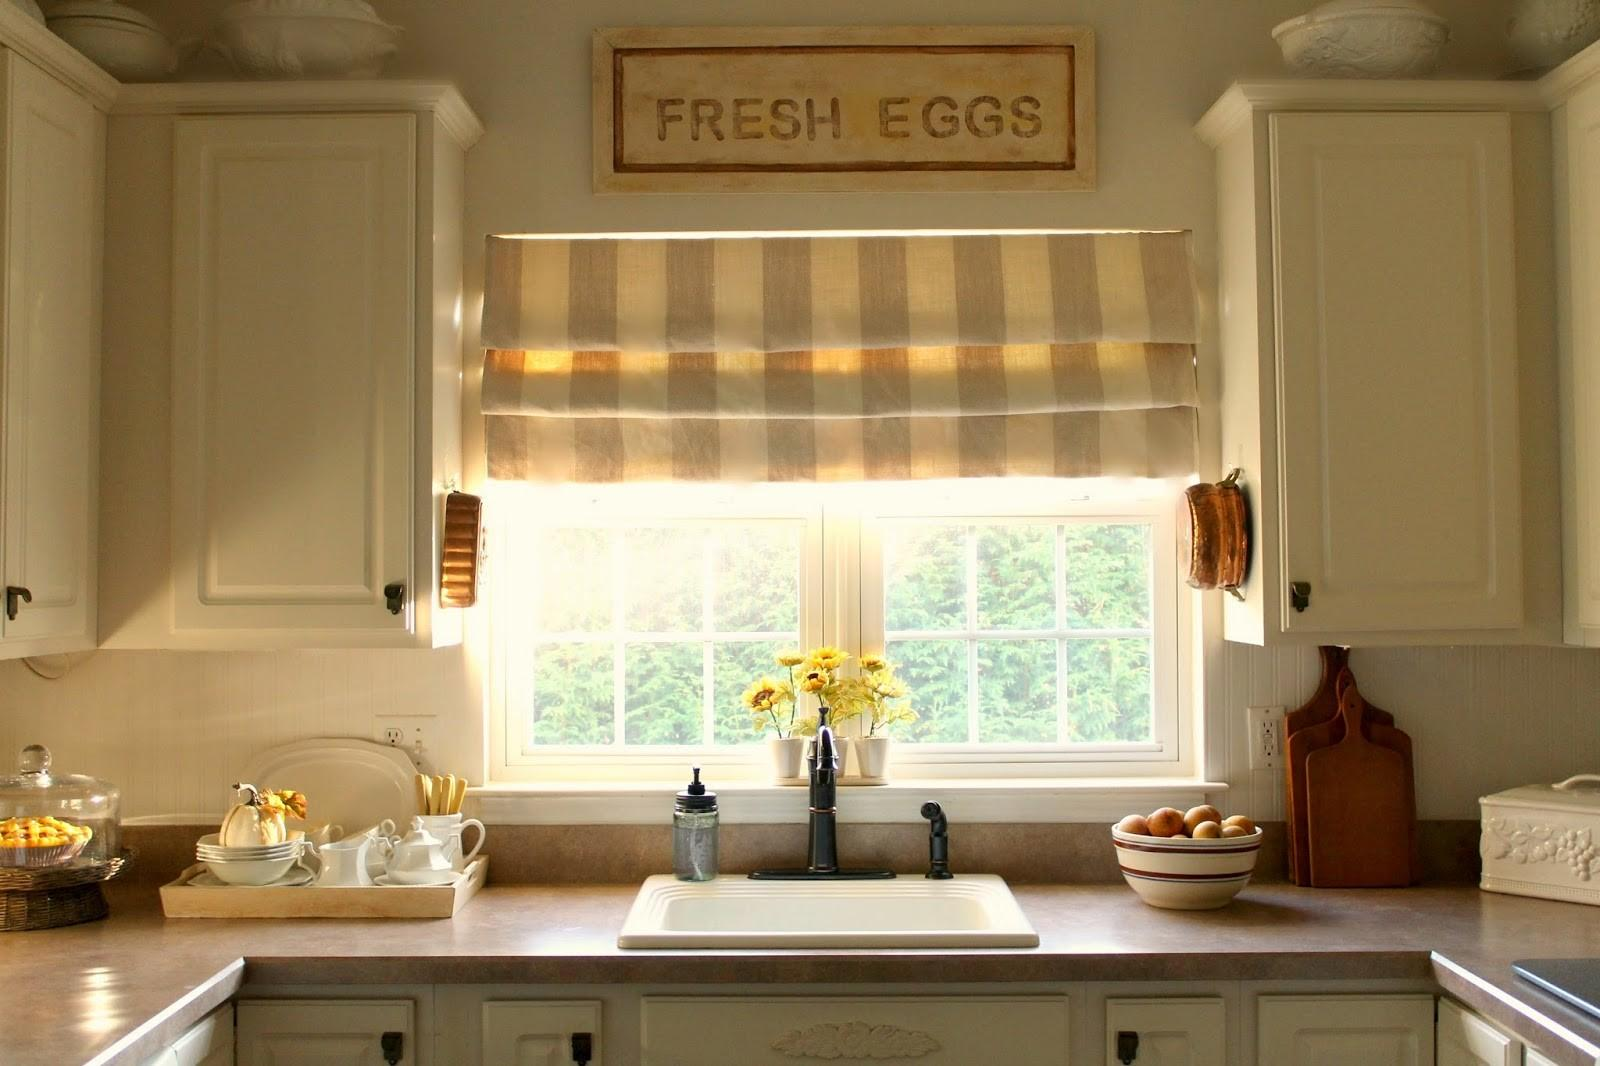 Kitchen Classic Decor Idea Small Room Space